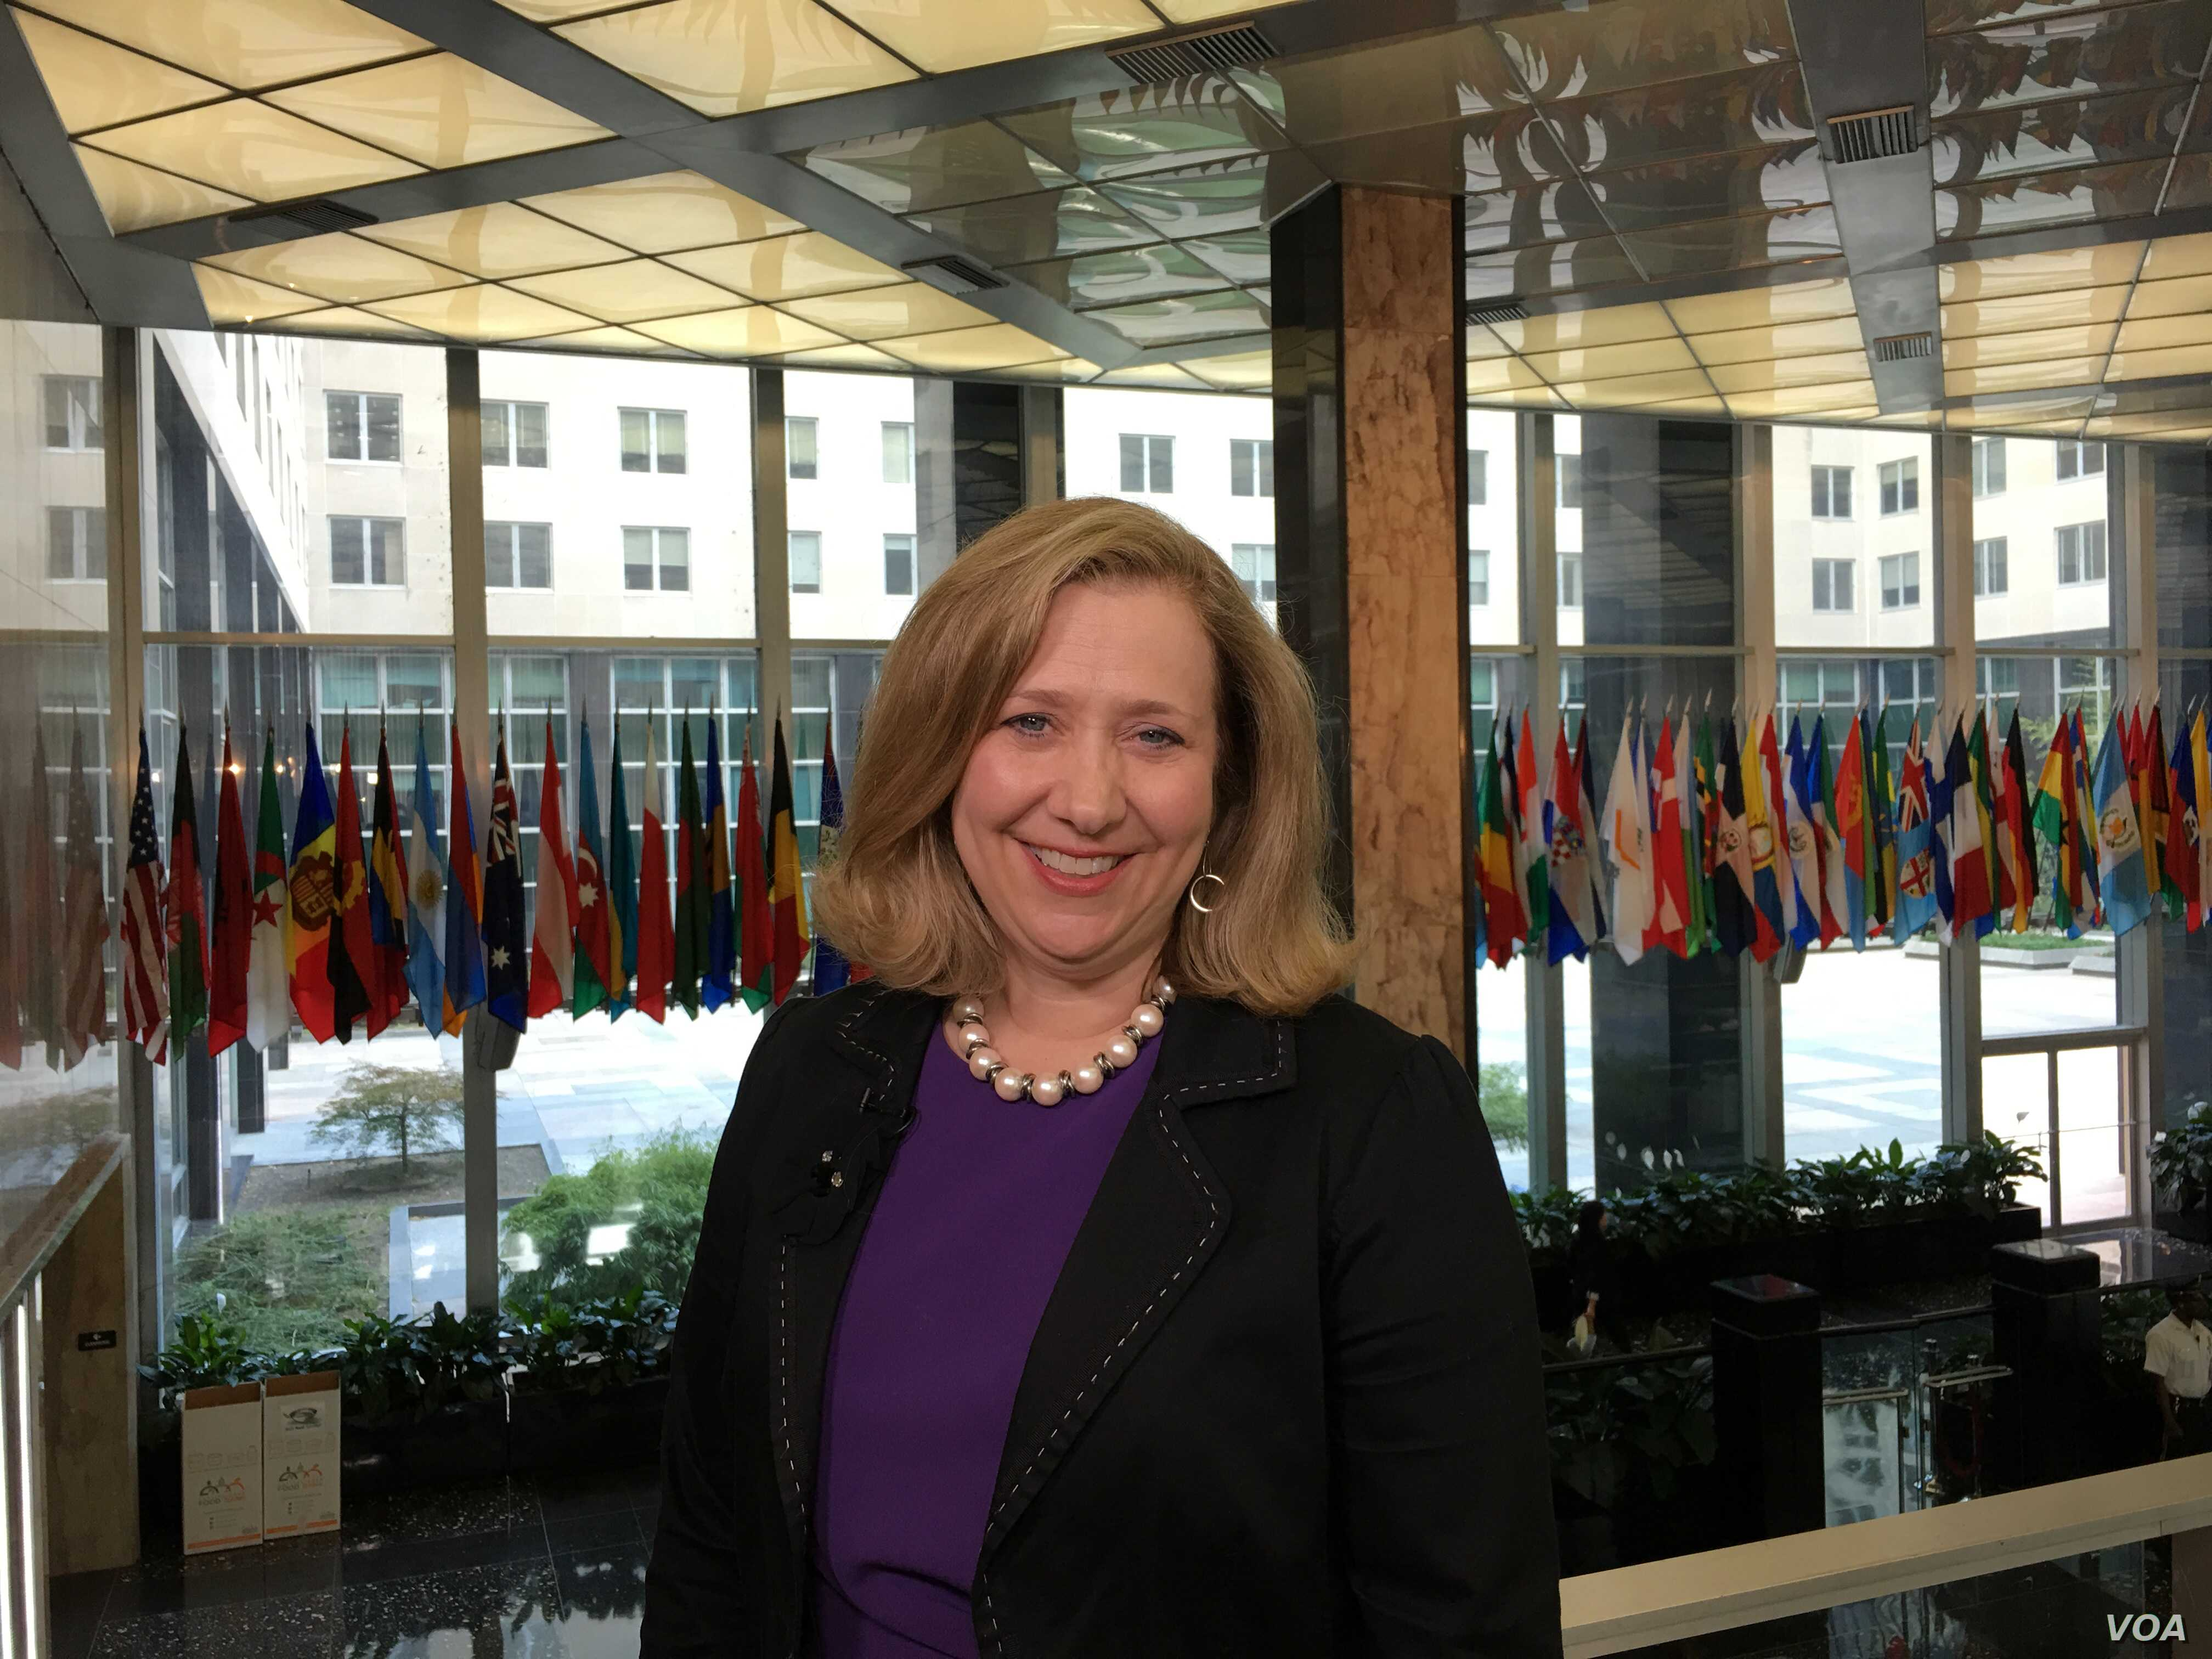 Susan Coppedge, the U.S. Ambassador-at-large to Monitor and Combat Trafficking in Persons.